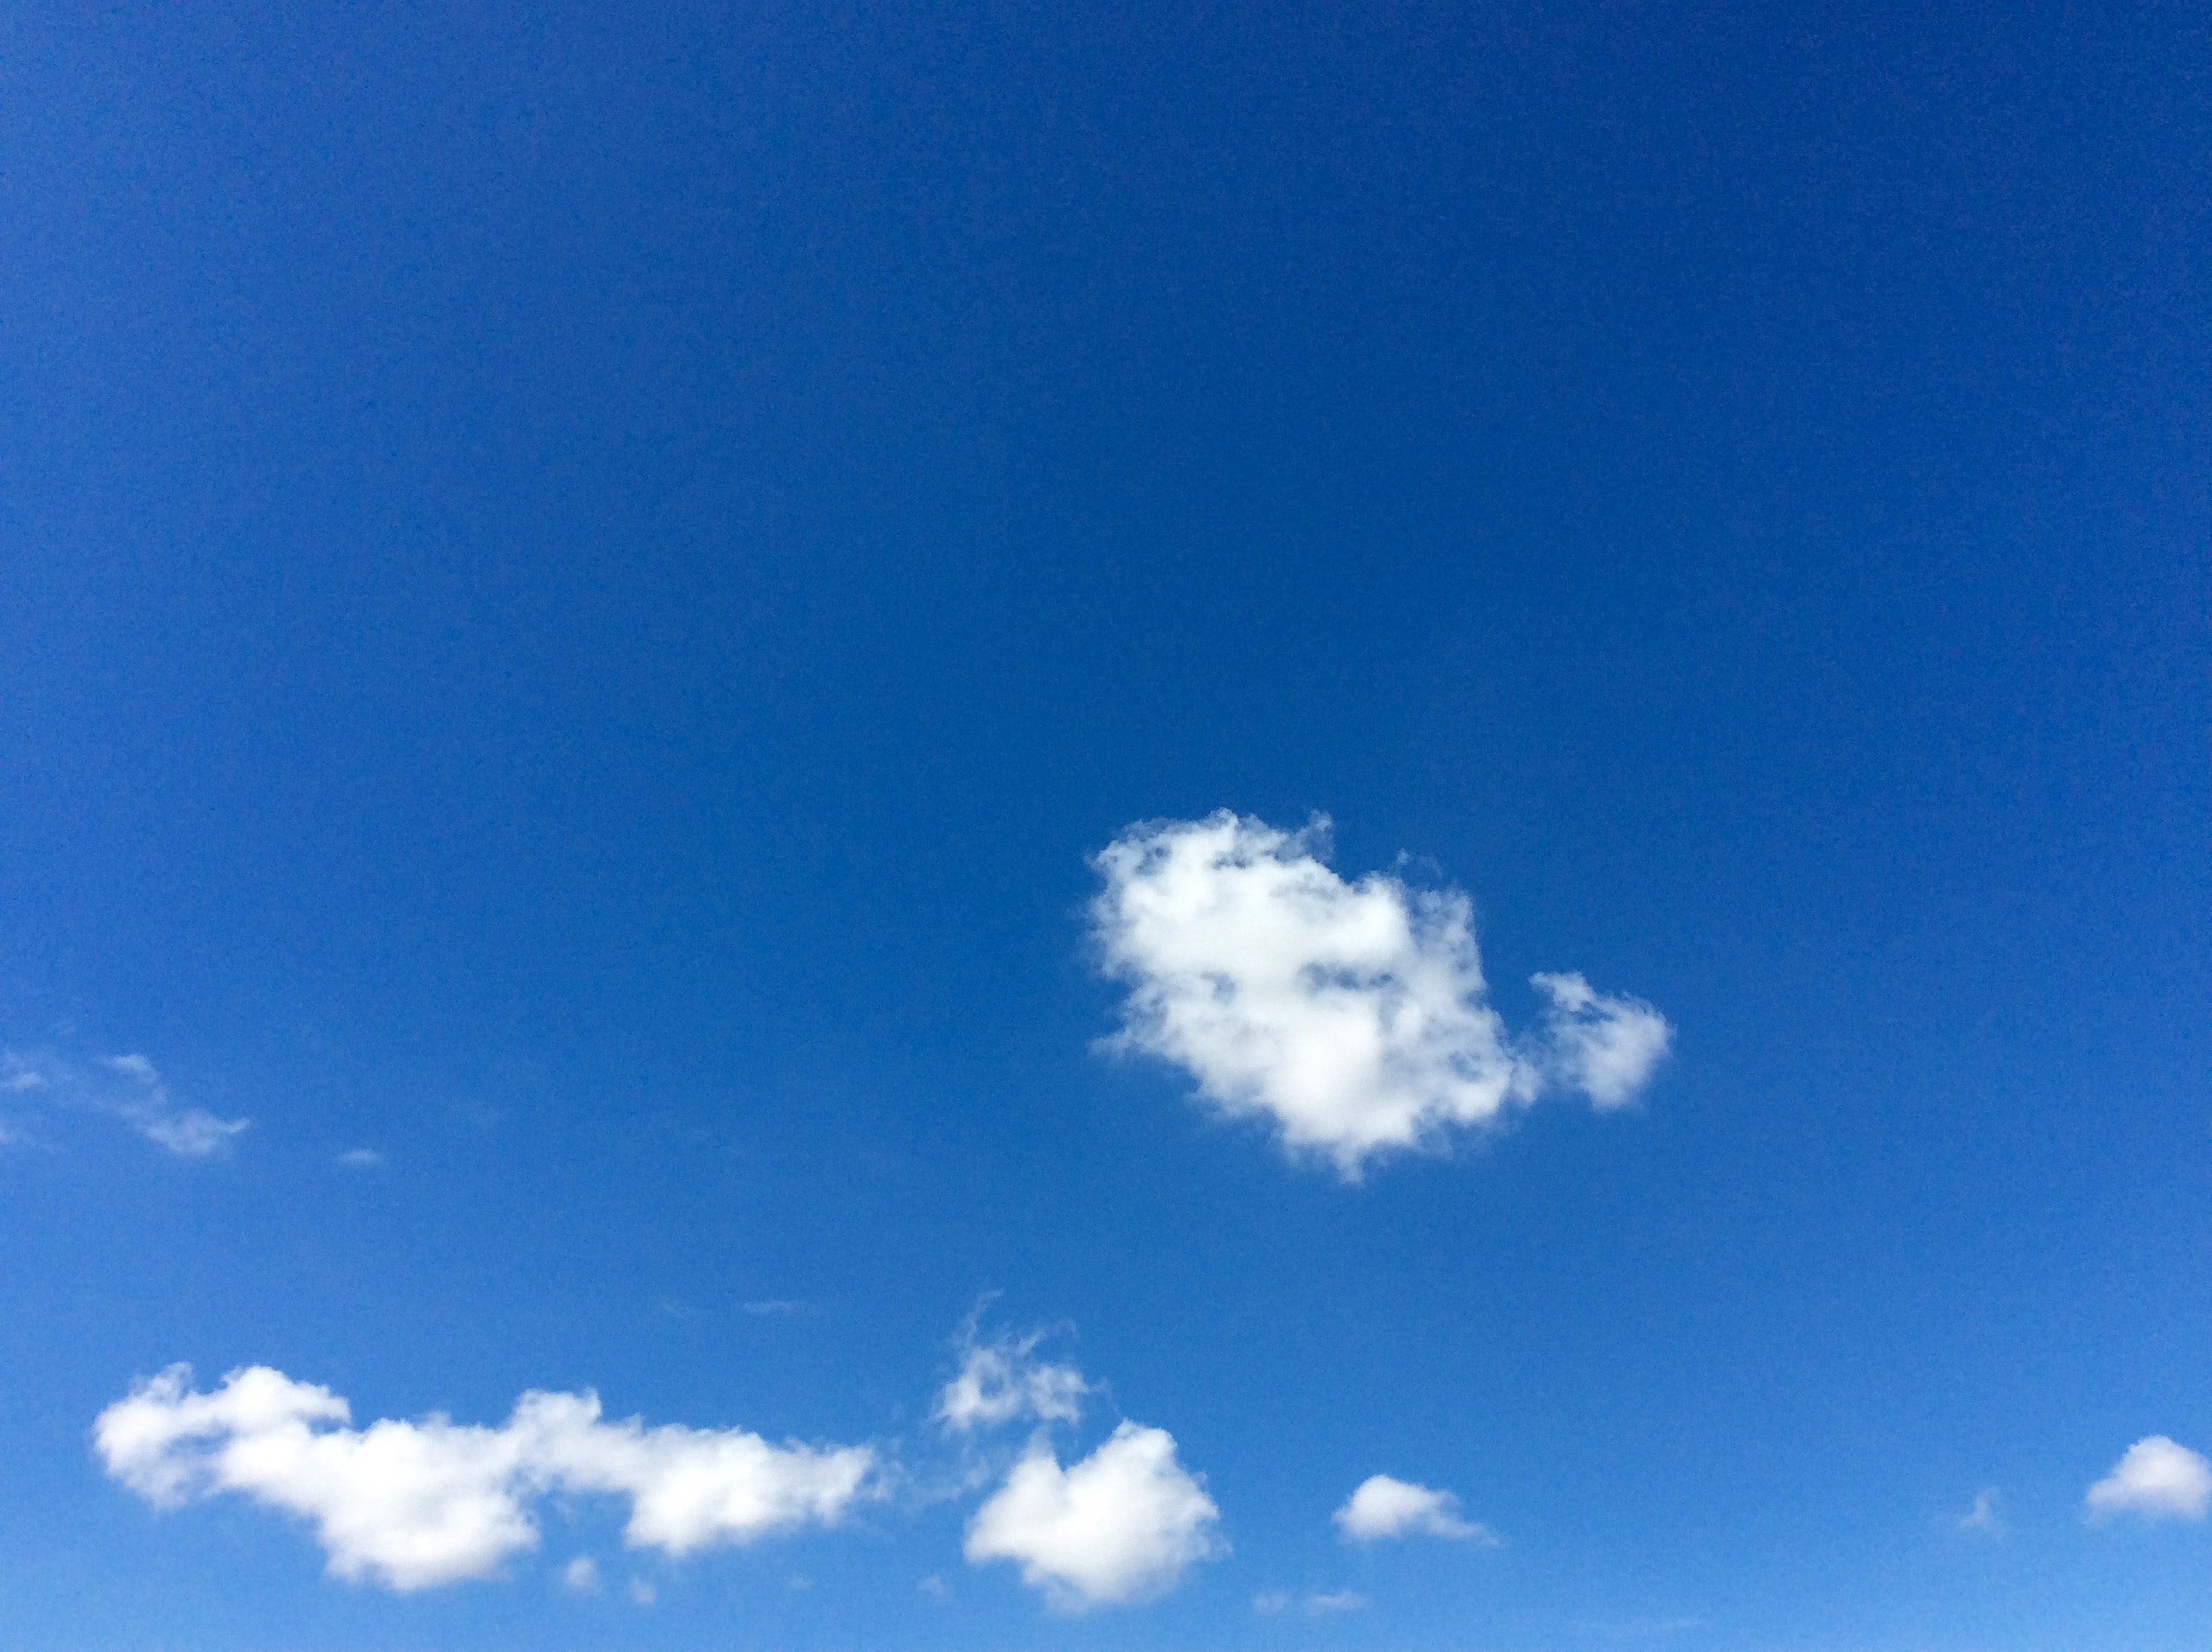 blue-blue-sky-beautiful-sky-puffy-clouds-4423022